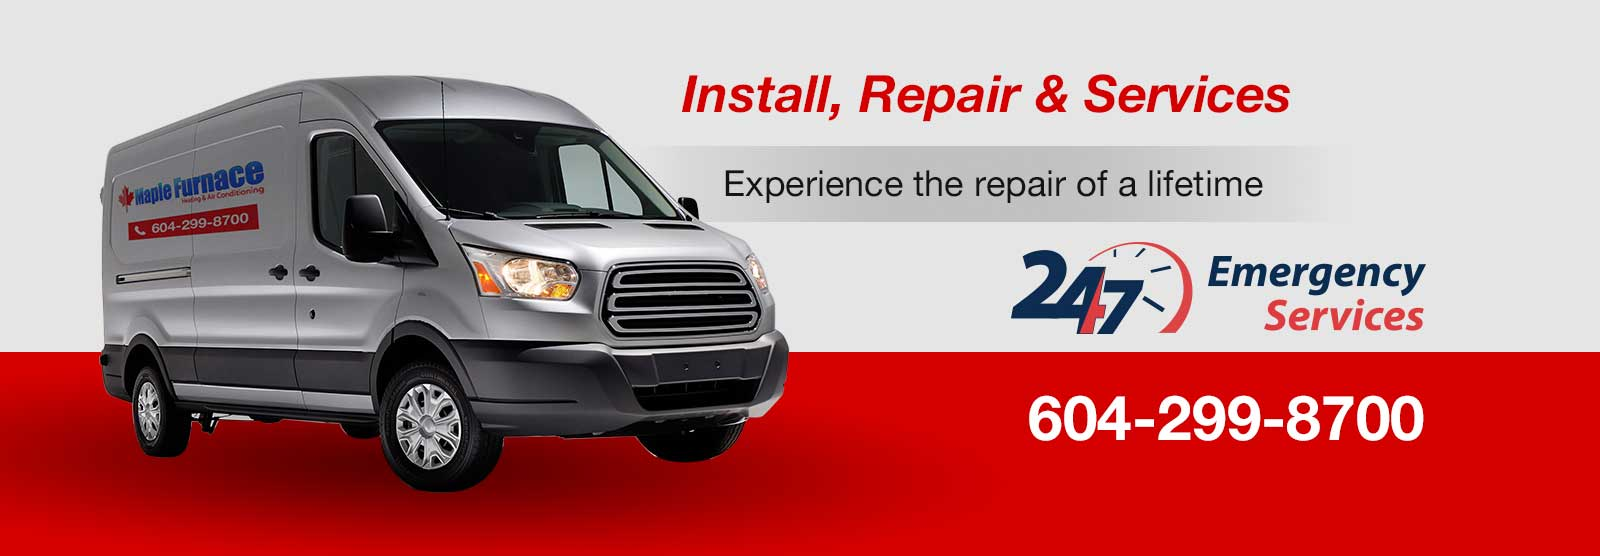 heat-pump-repair-service-in-Burnaby